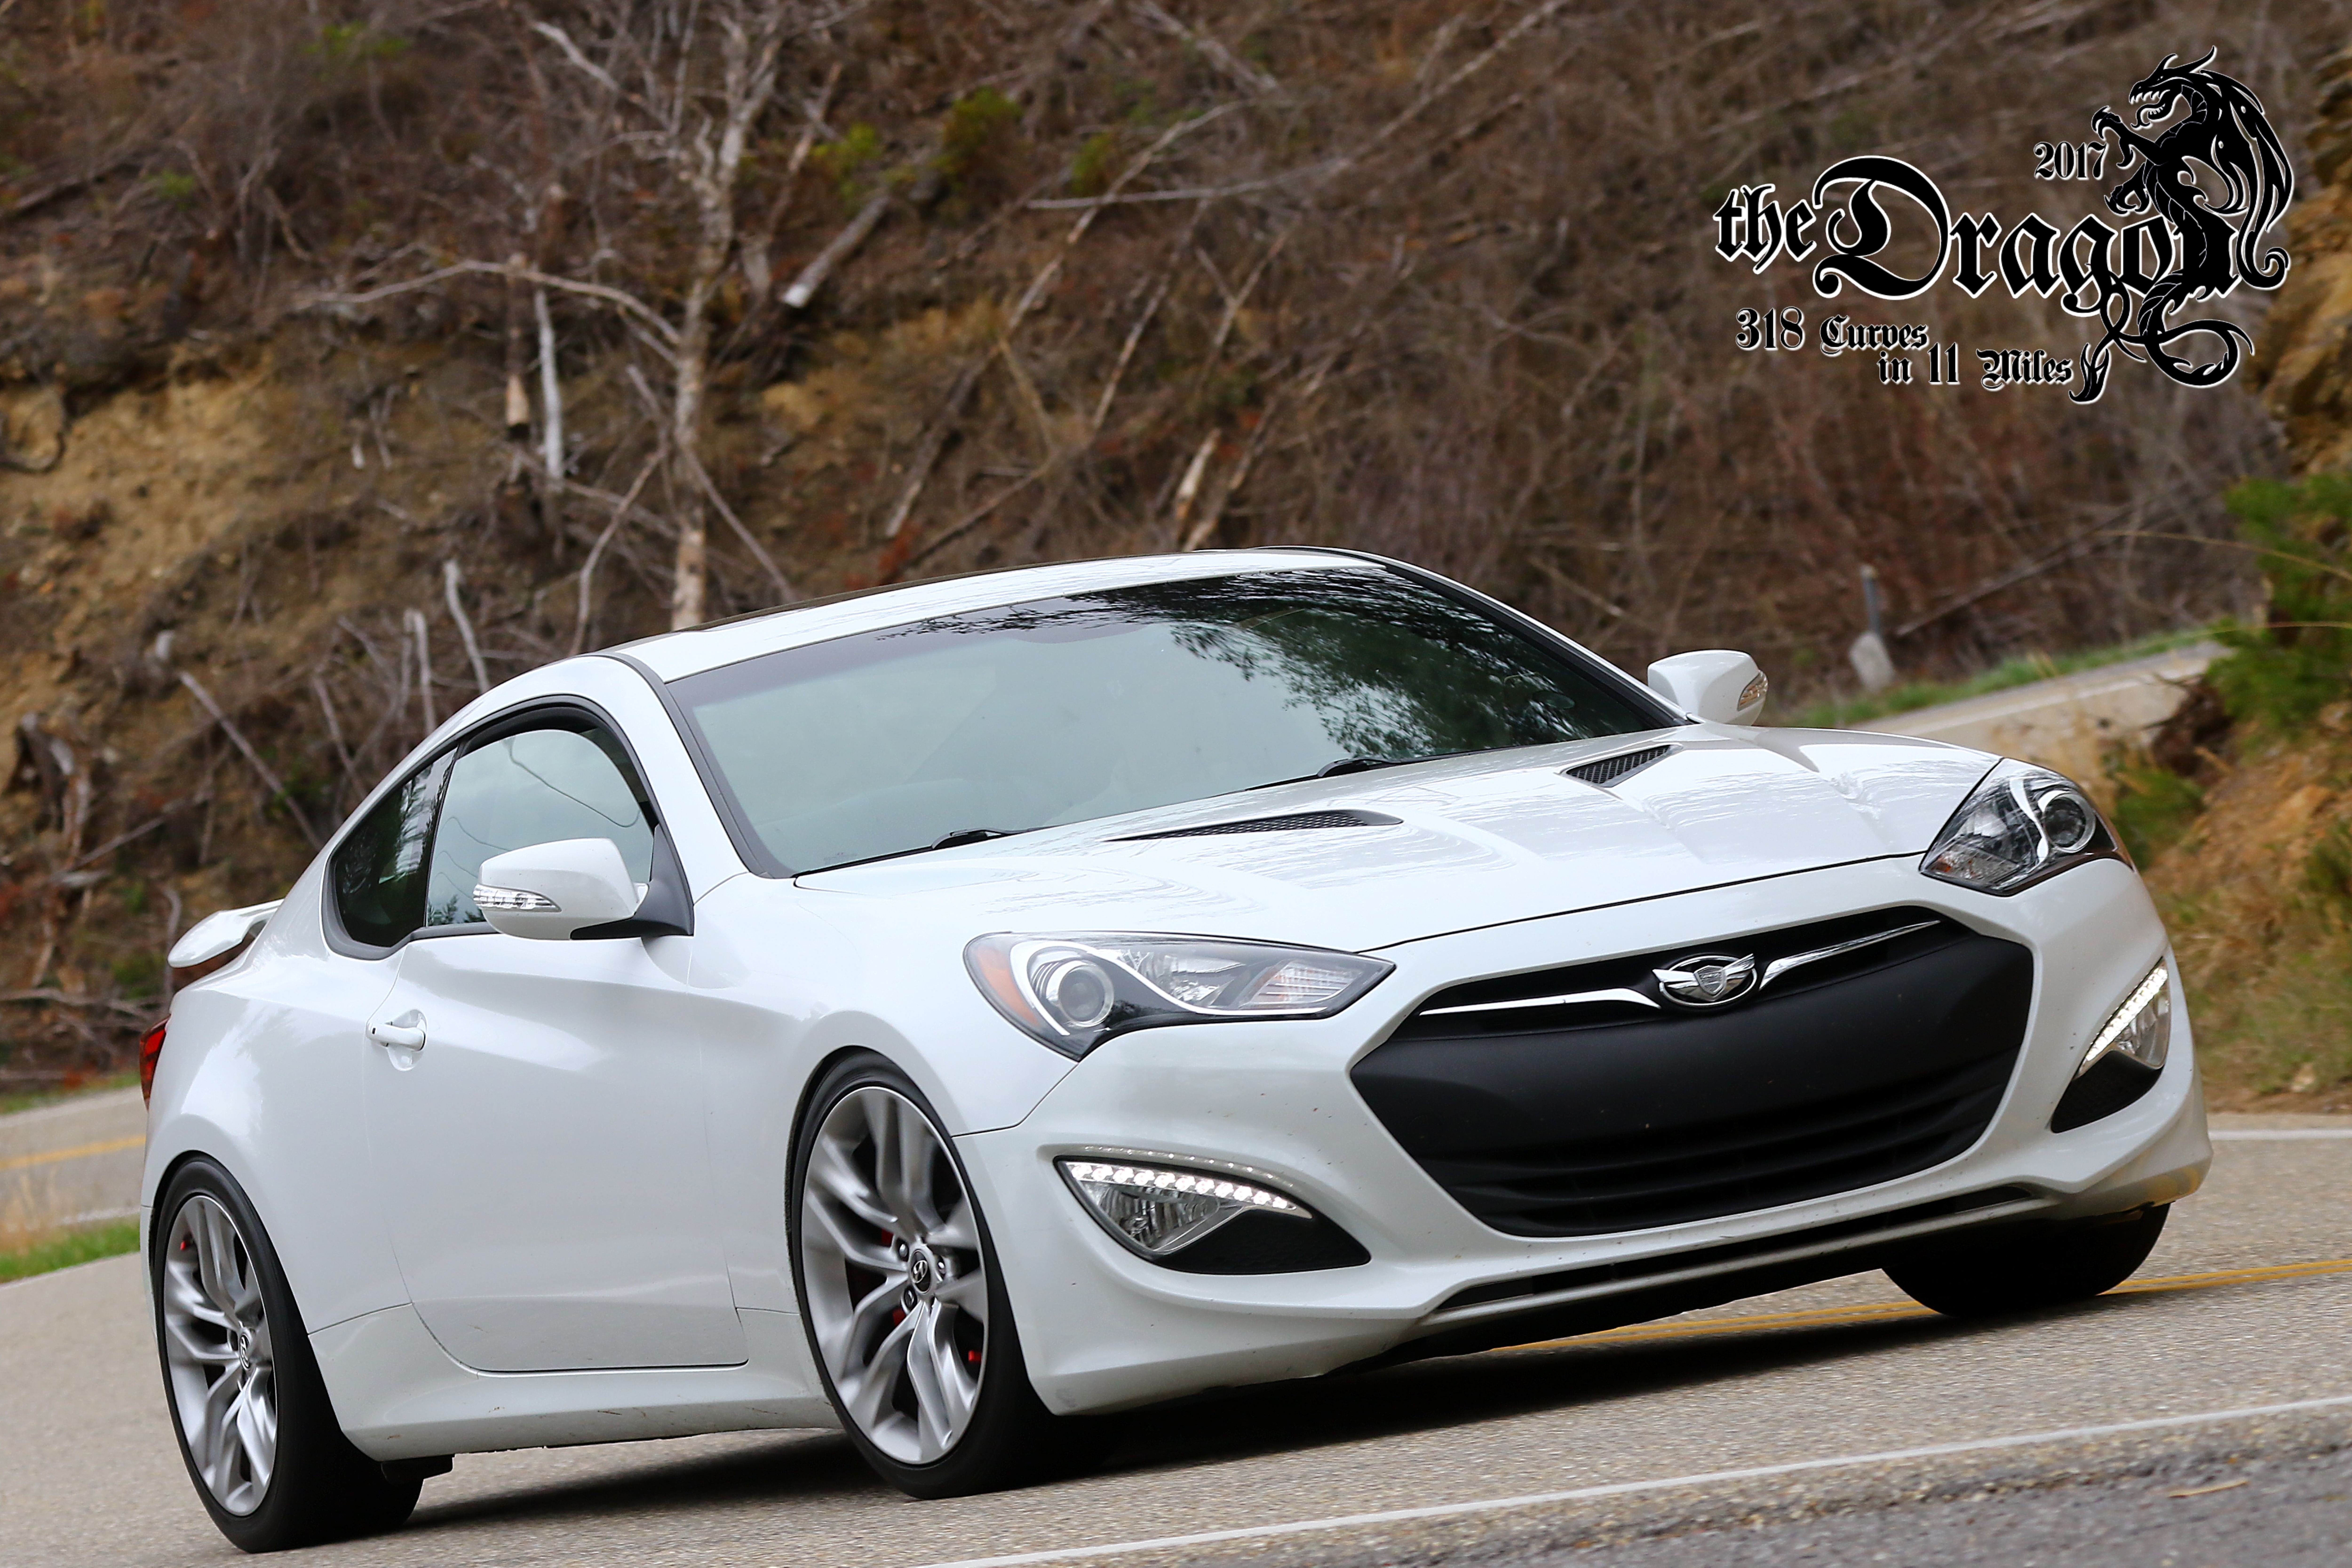 My 2013 hyundai genesis coupe on the tail of the dragon os 10800x7200